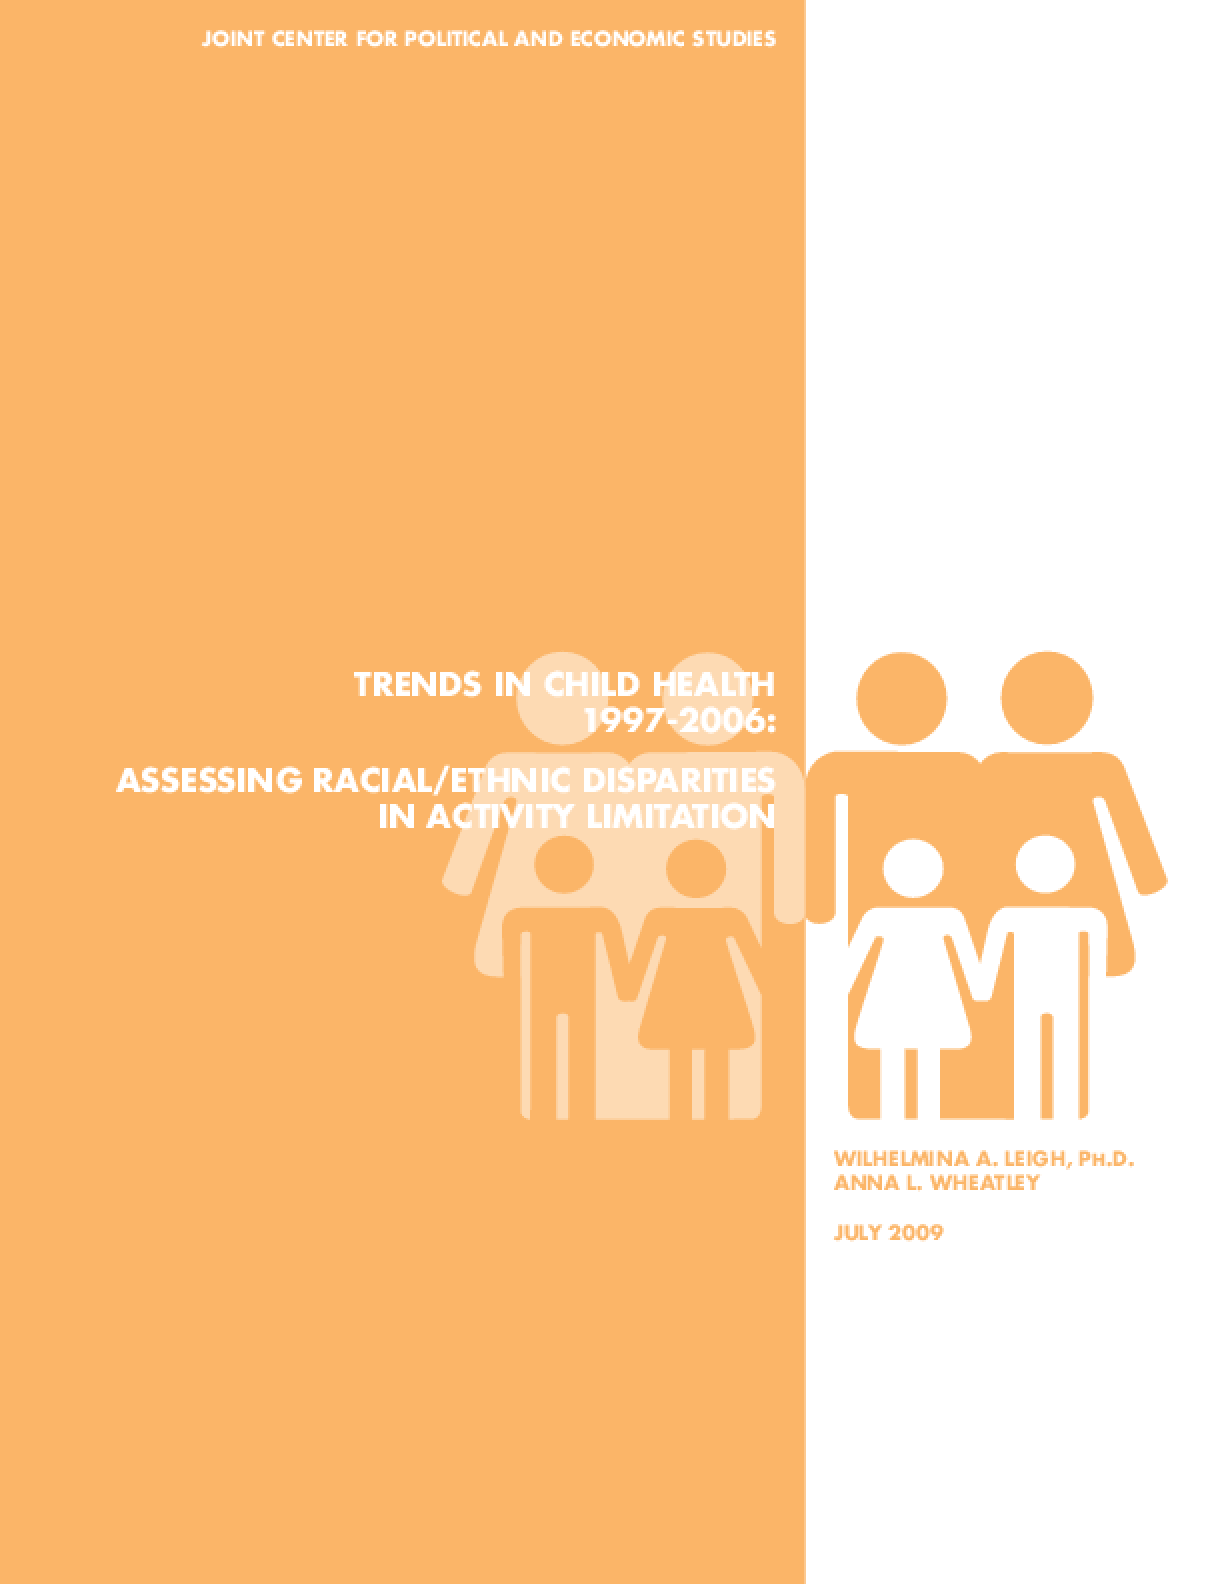 Trends in Child Health 1997-2006: Assessing Racial/Ethnic Disparities in Activity Limitation